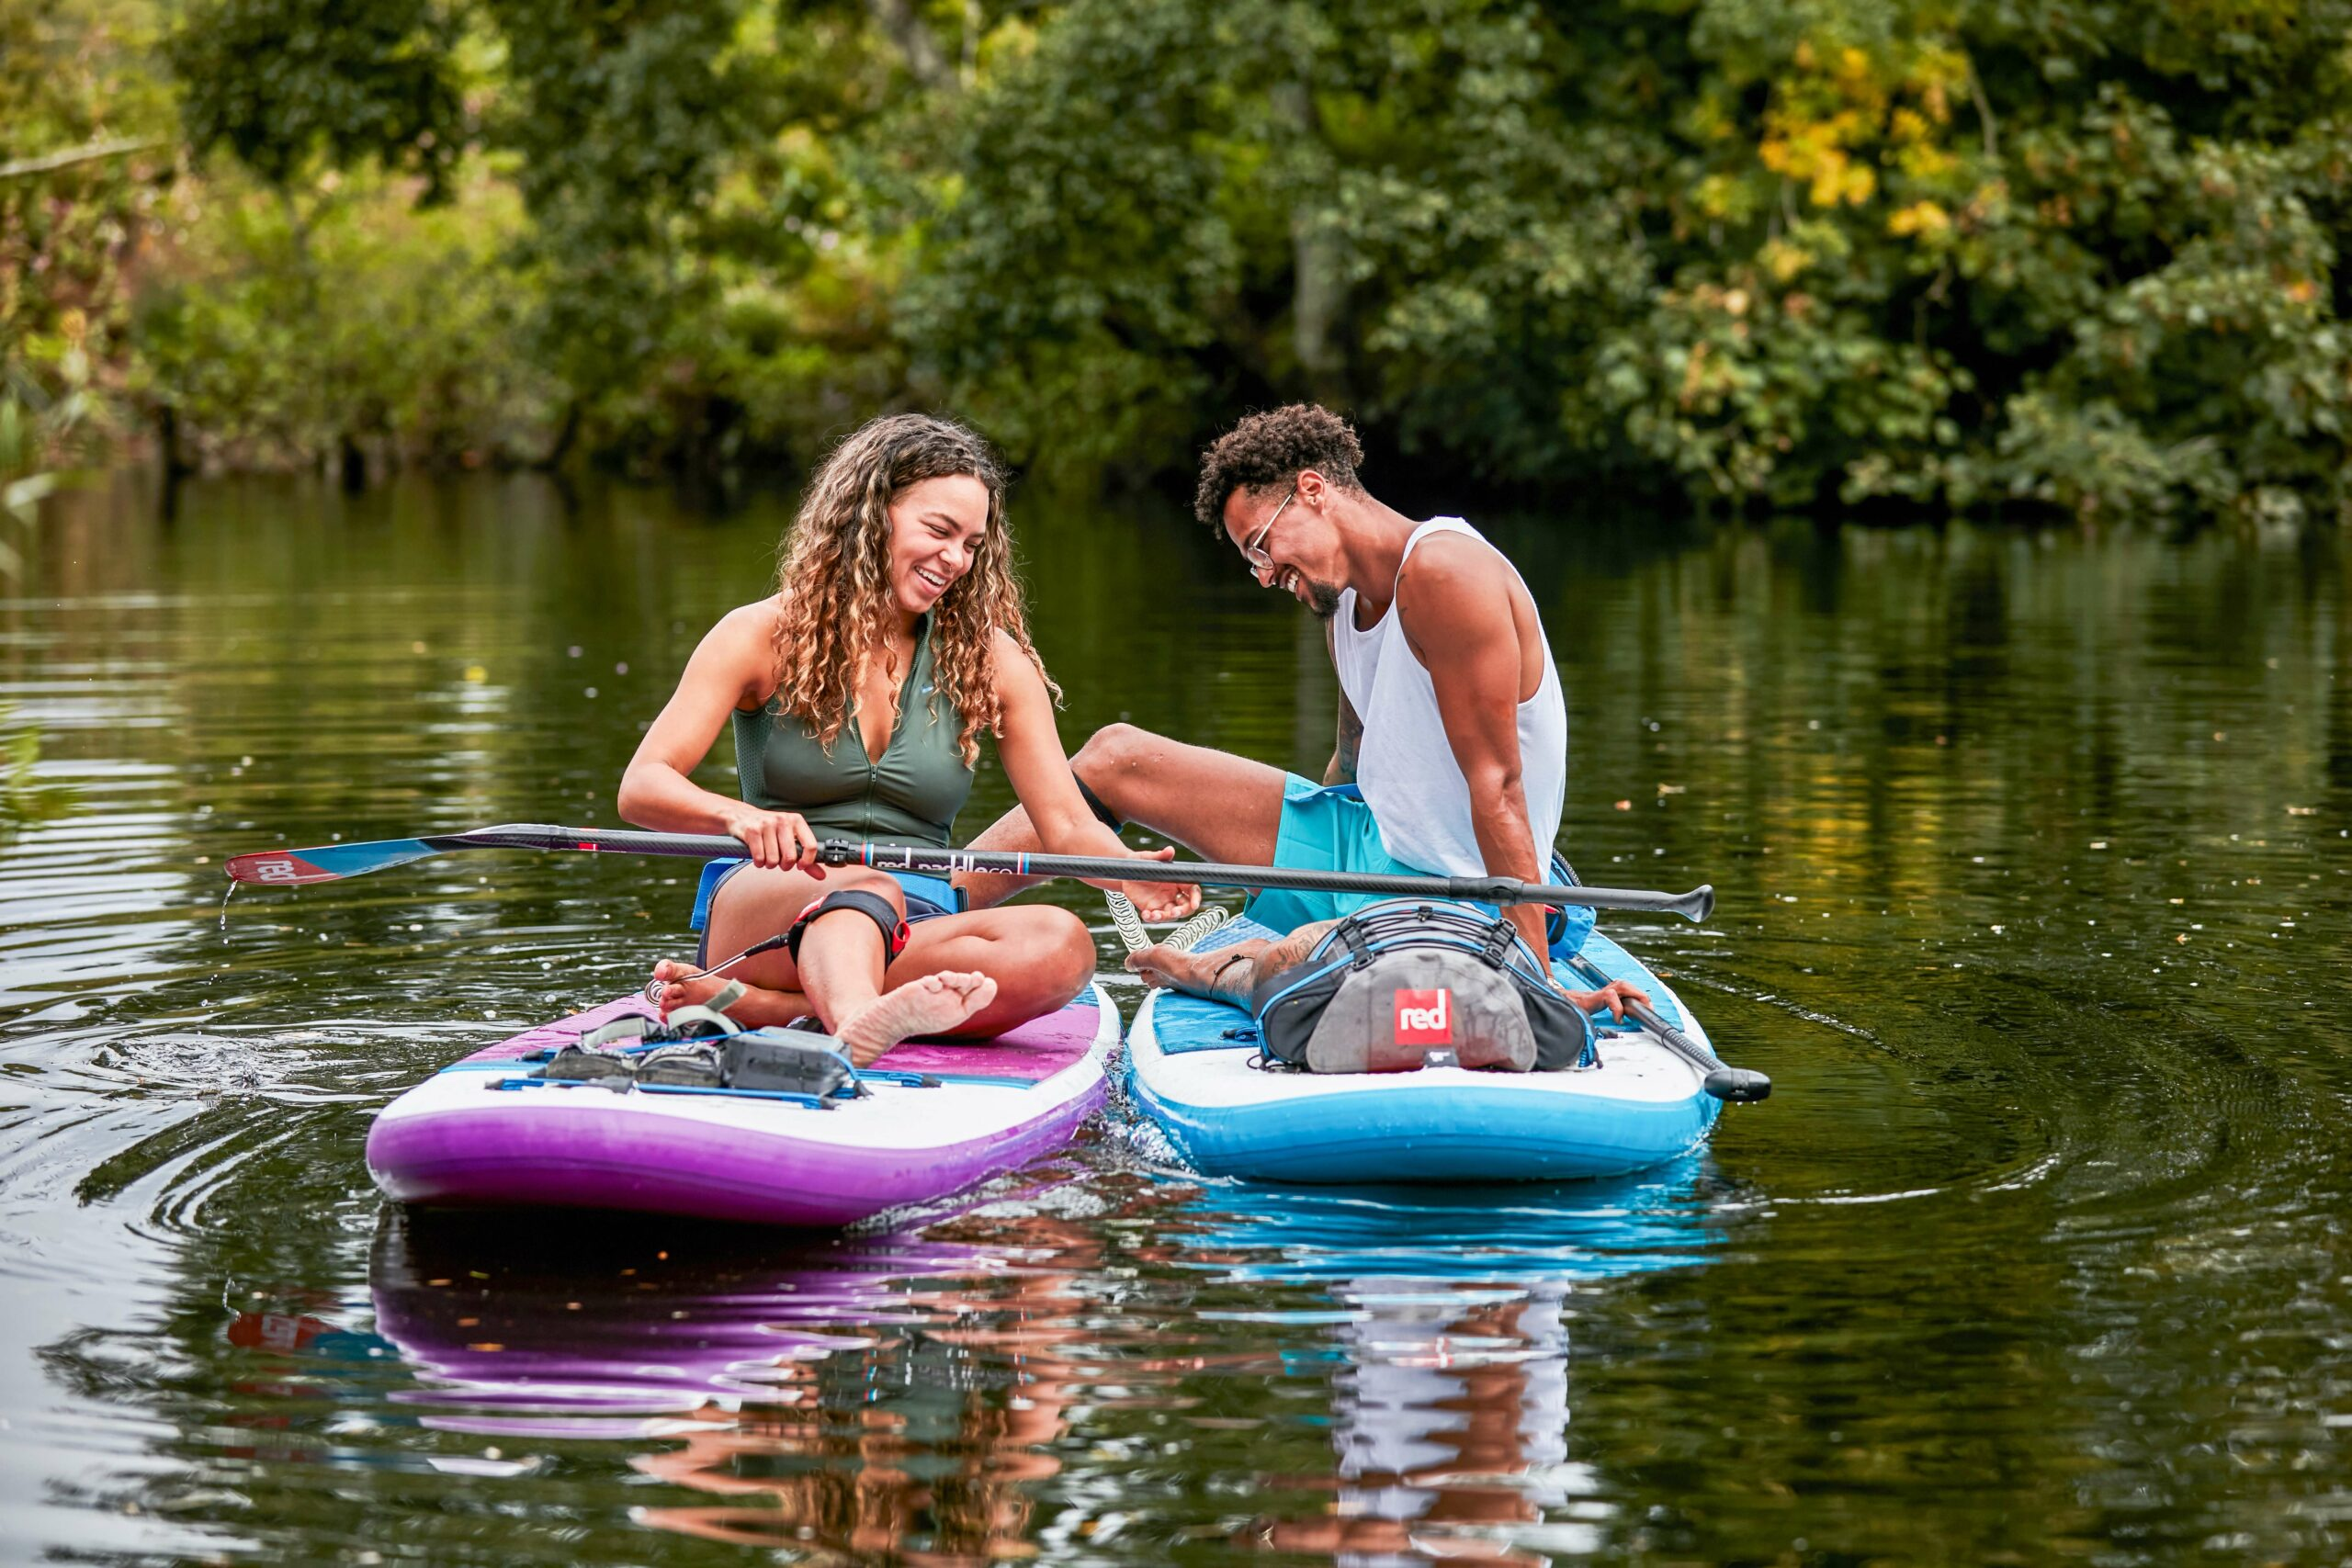 Two people sitting on paddle boards in a lake